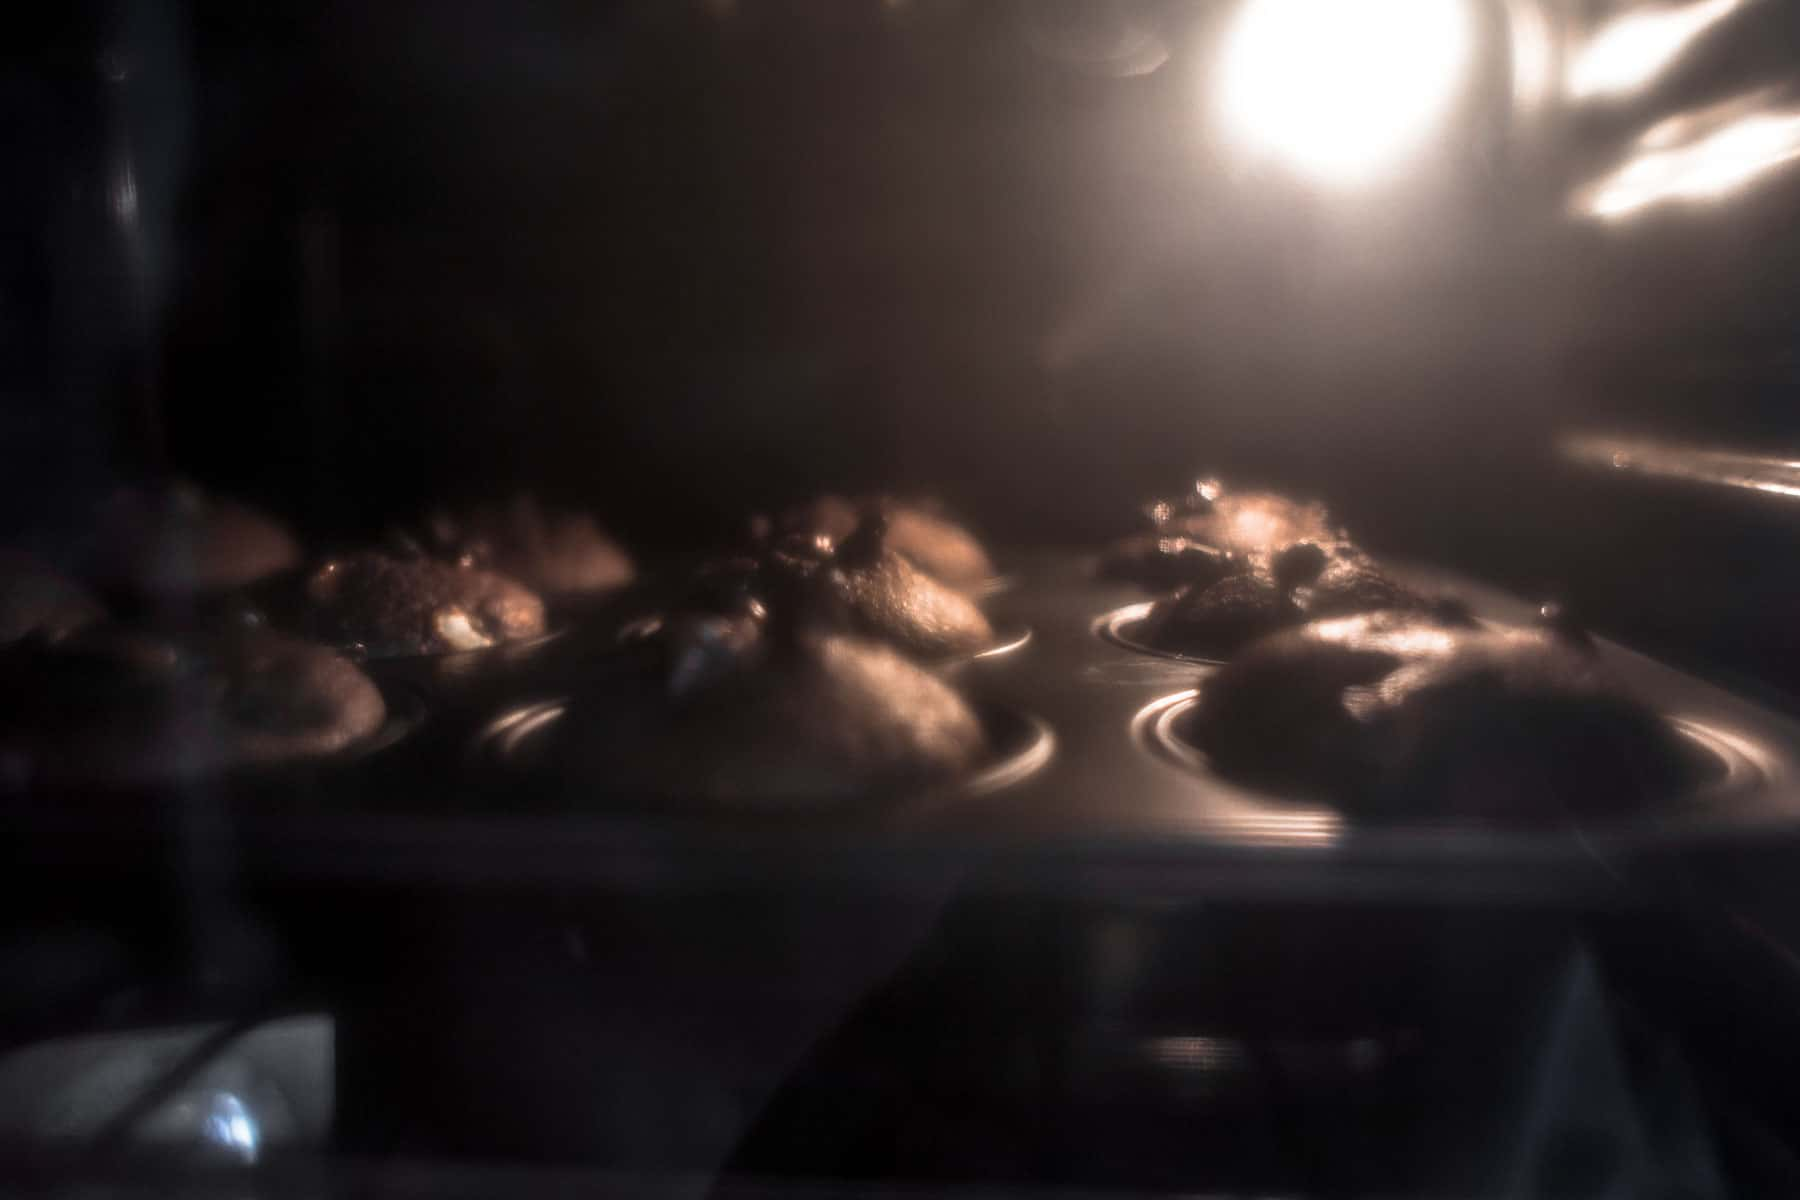 Baking Chocolate Banana Muffins in oven